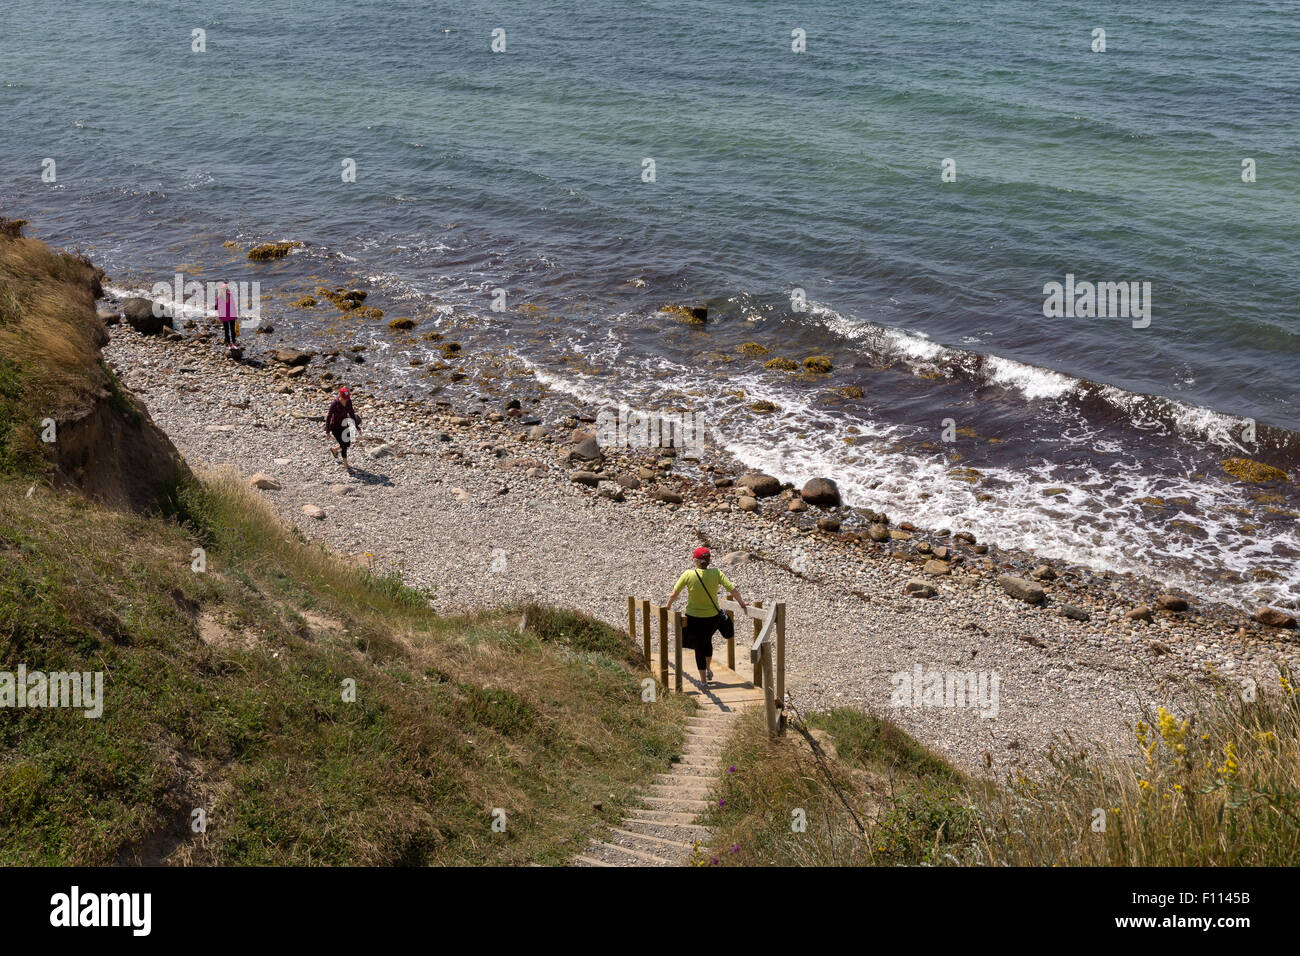 Tourists at the beach at Voderup Klint on the island of Aero, Denmark - Stock Image